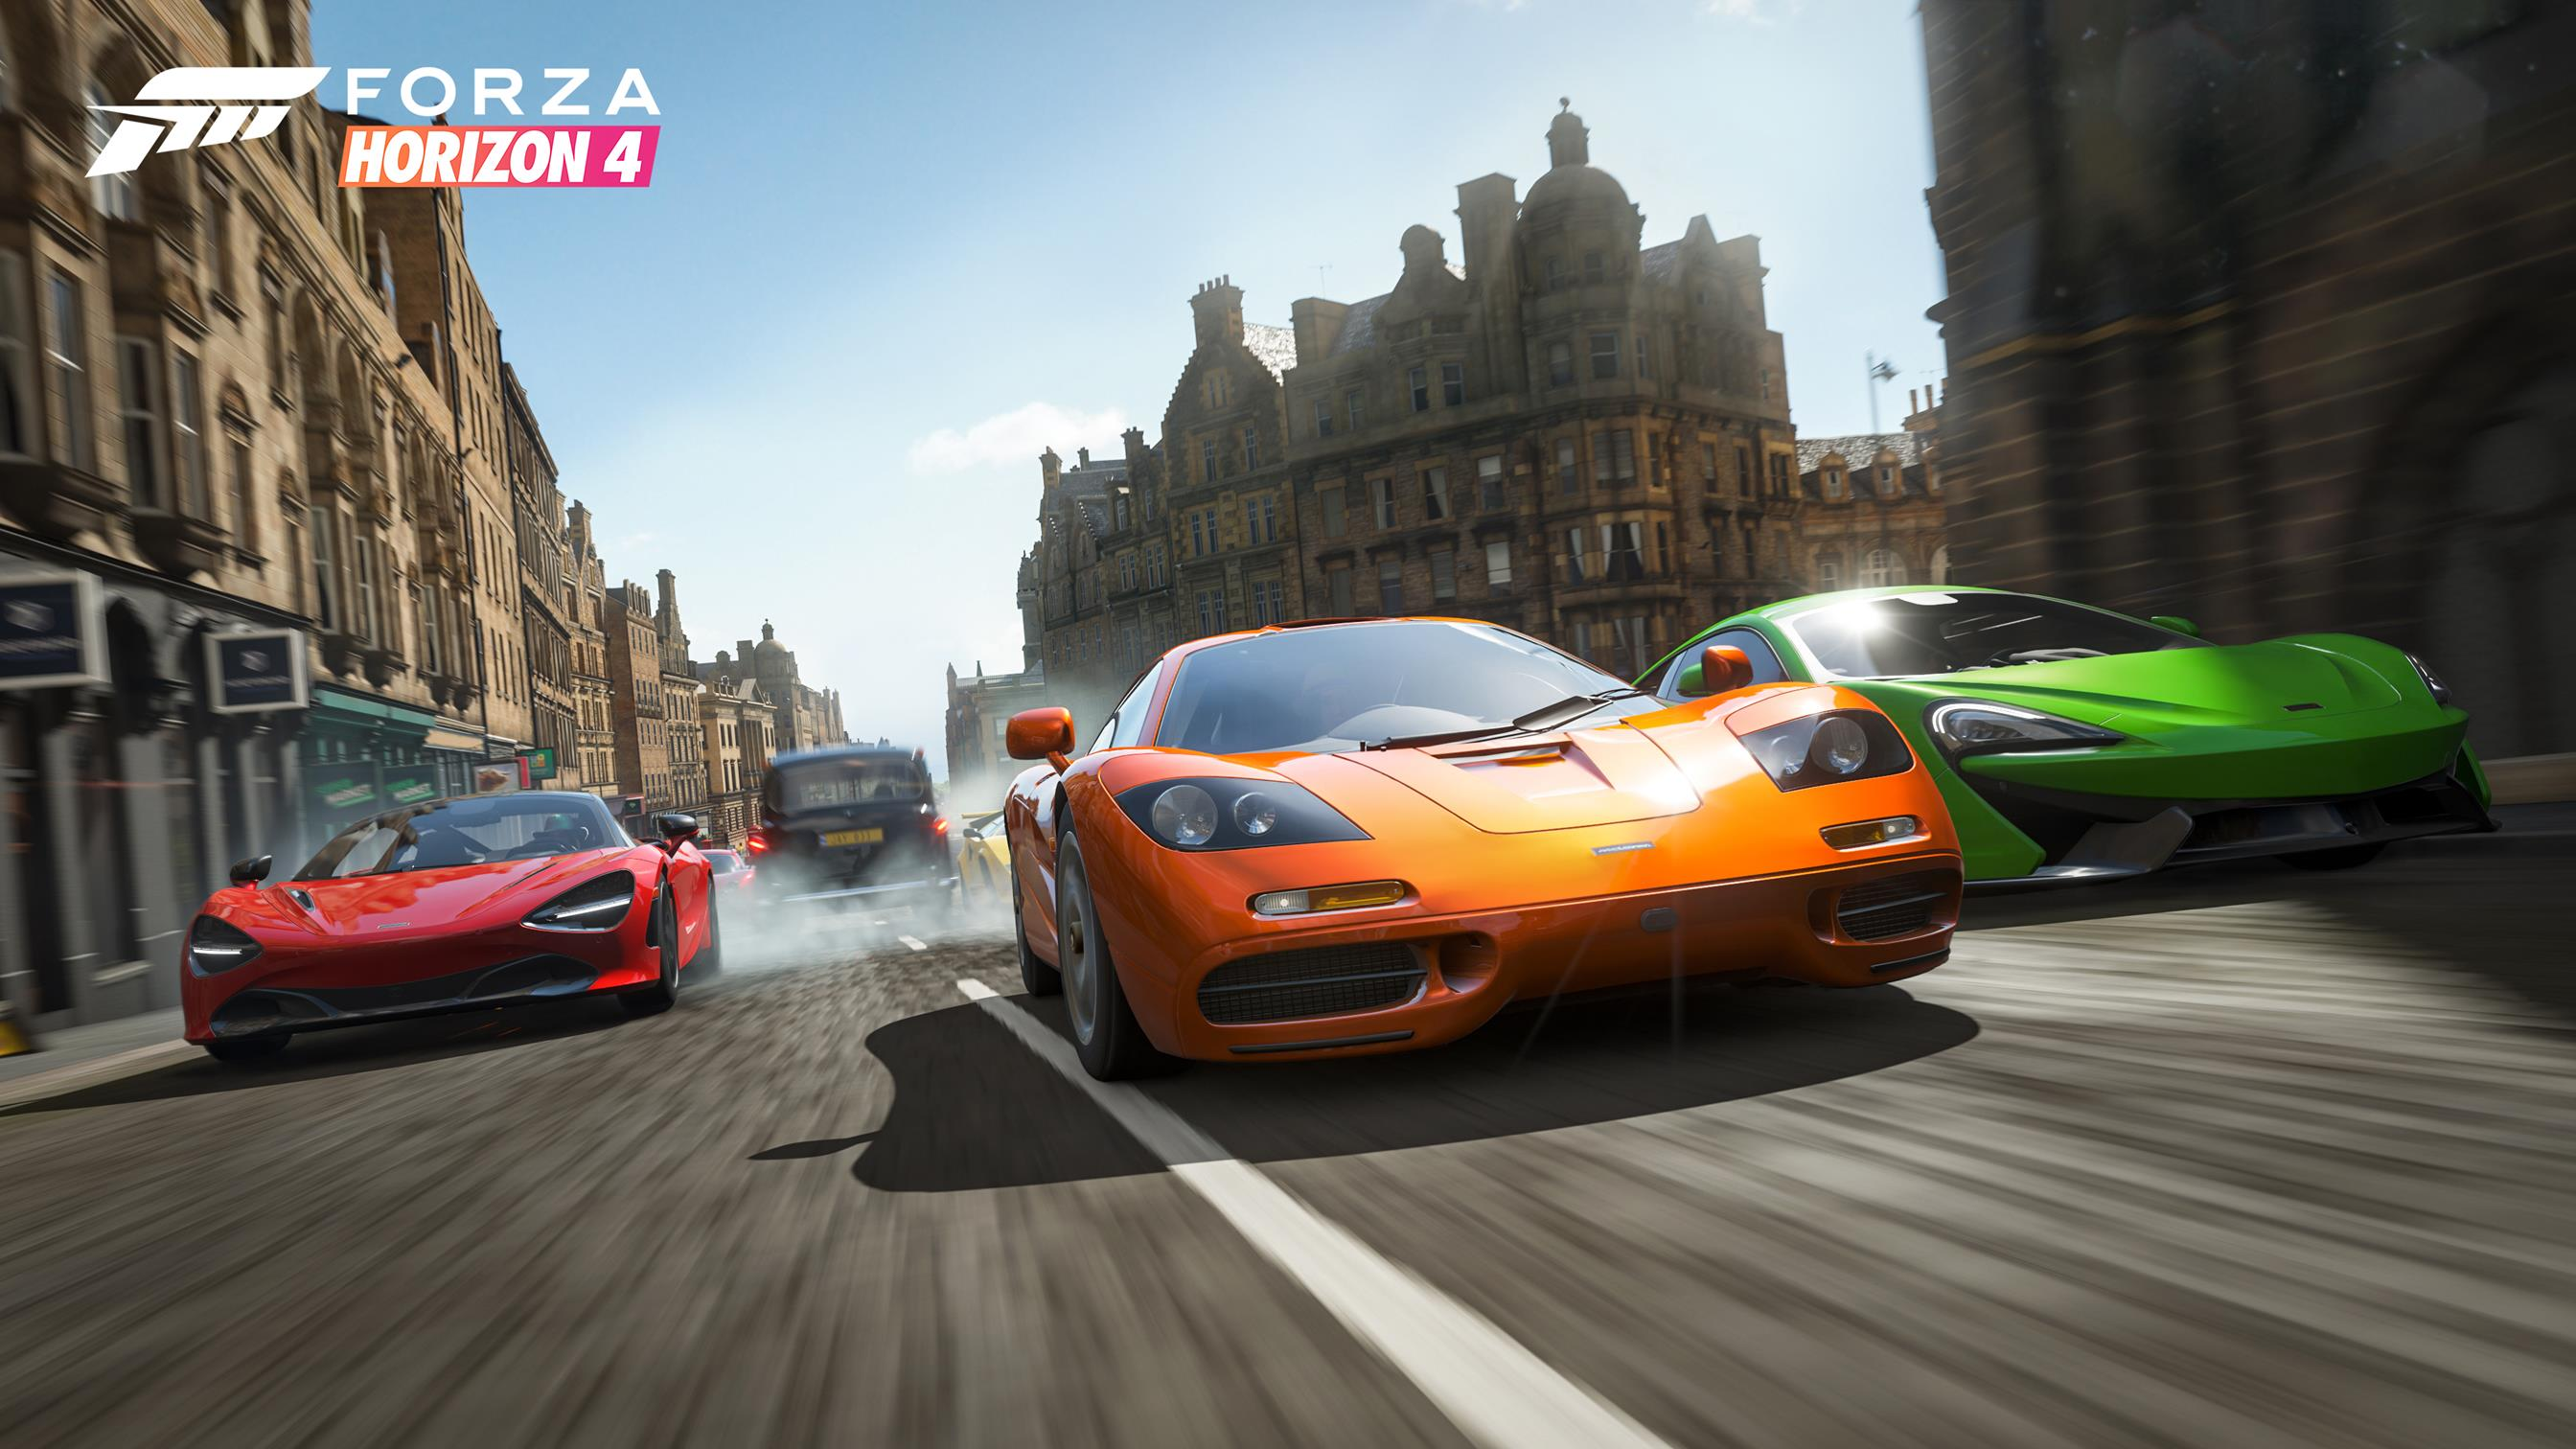 Forza Horizon 4 will launch with HDR support on PC